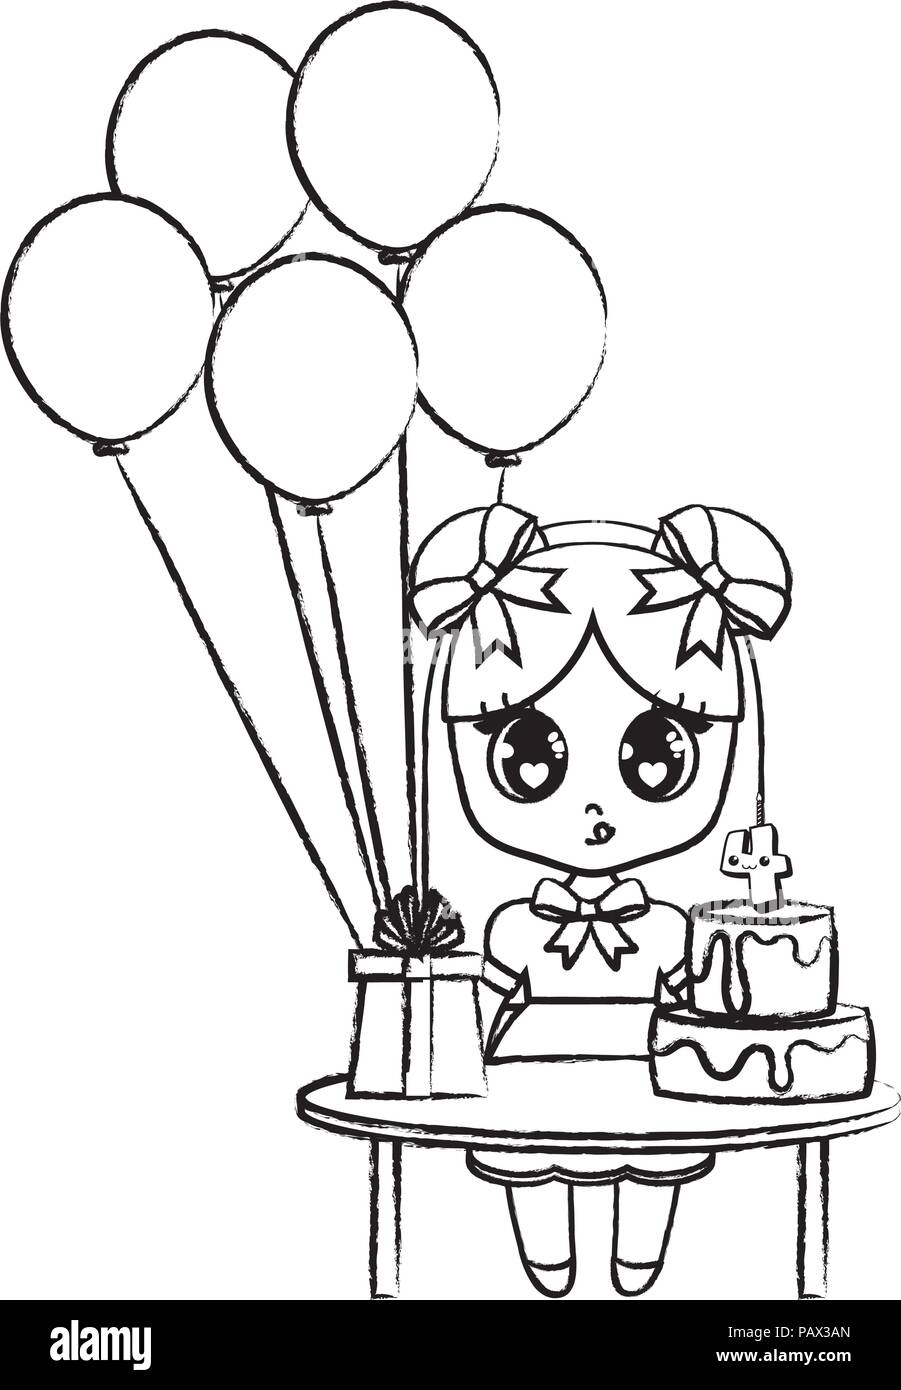 Awe Inspiring Happy Birthday Design With Asian Girl With Table With Balloons And Funny Birthday Cards Online Bapapcheapnameinfo